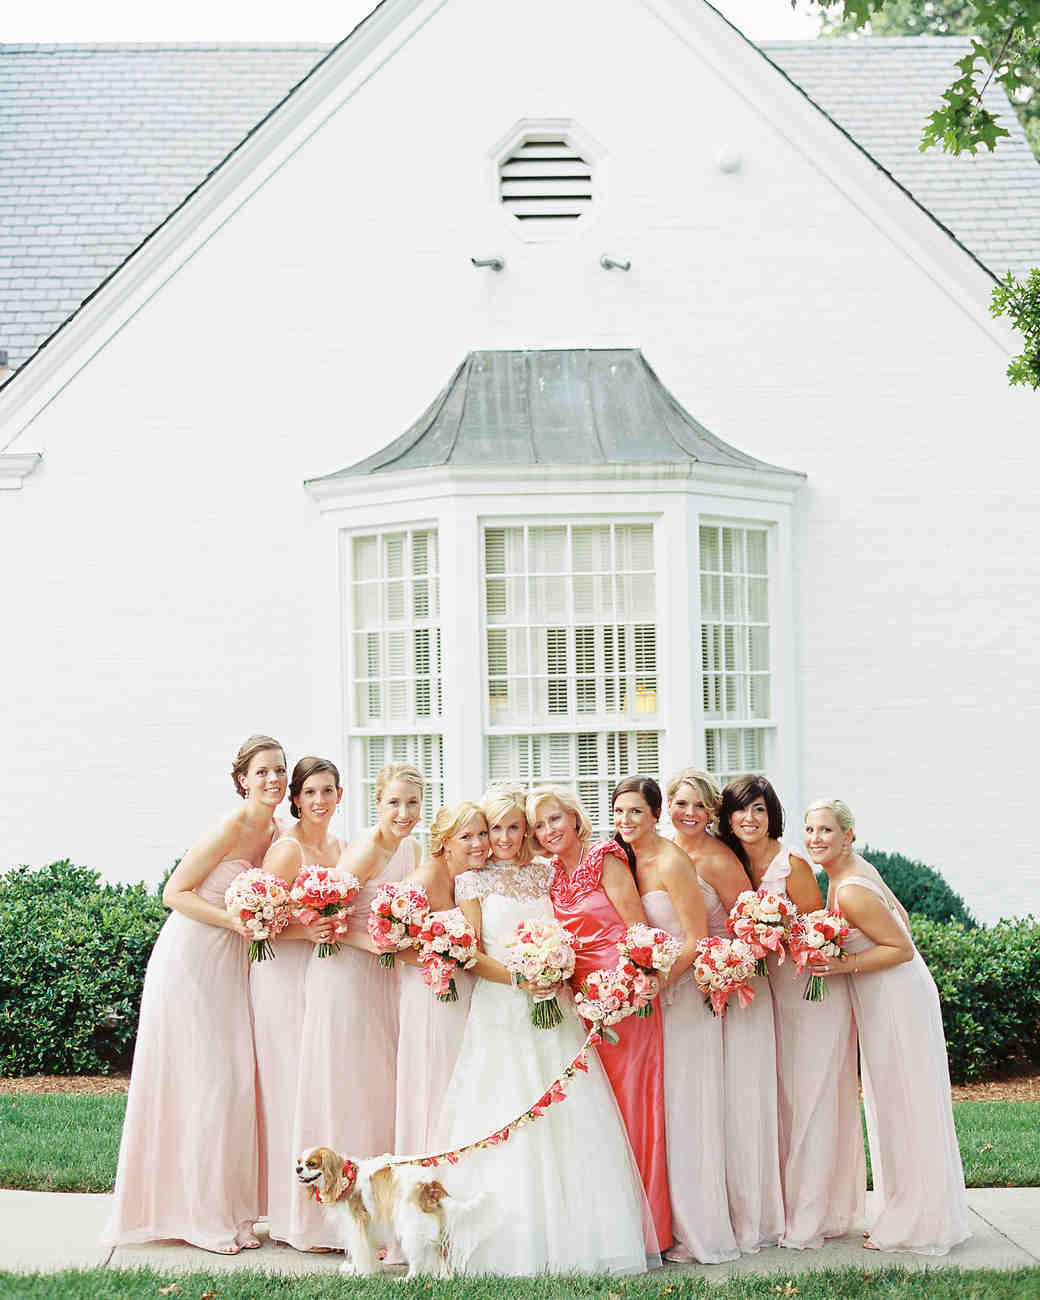 molly-patrick-wedding-bridesmaids-3255-s111760-0115.jpg